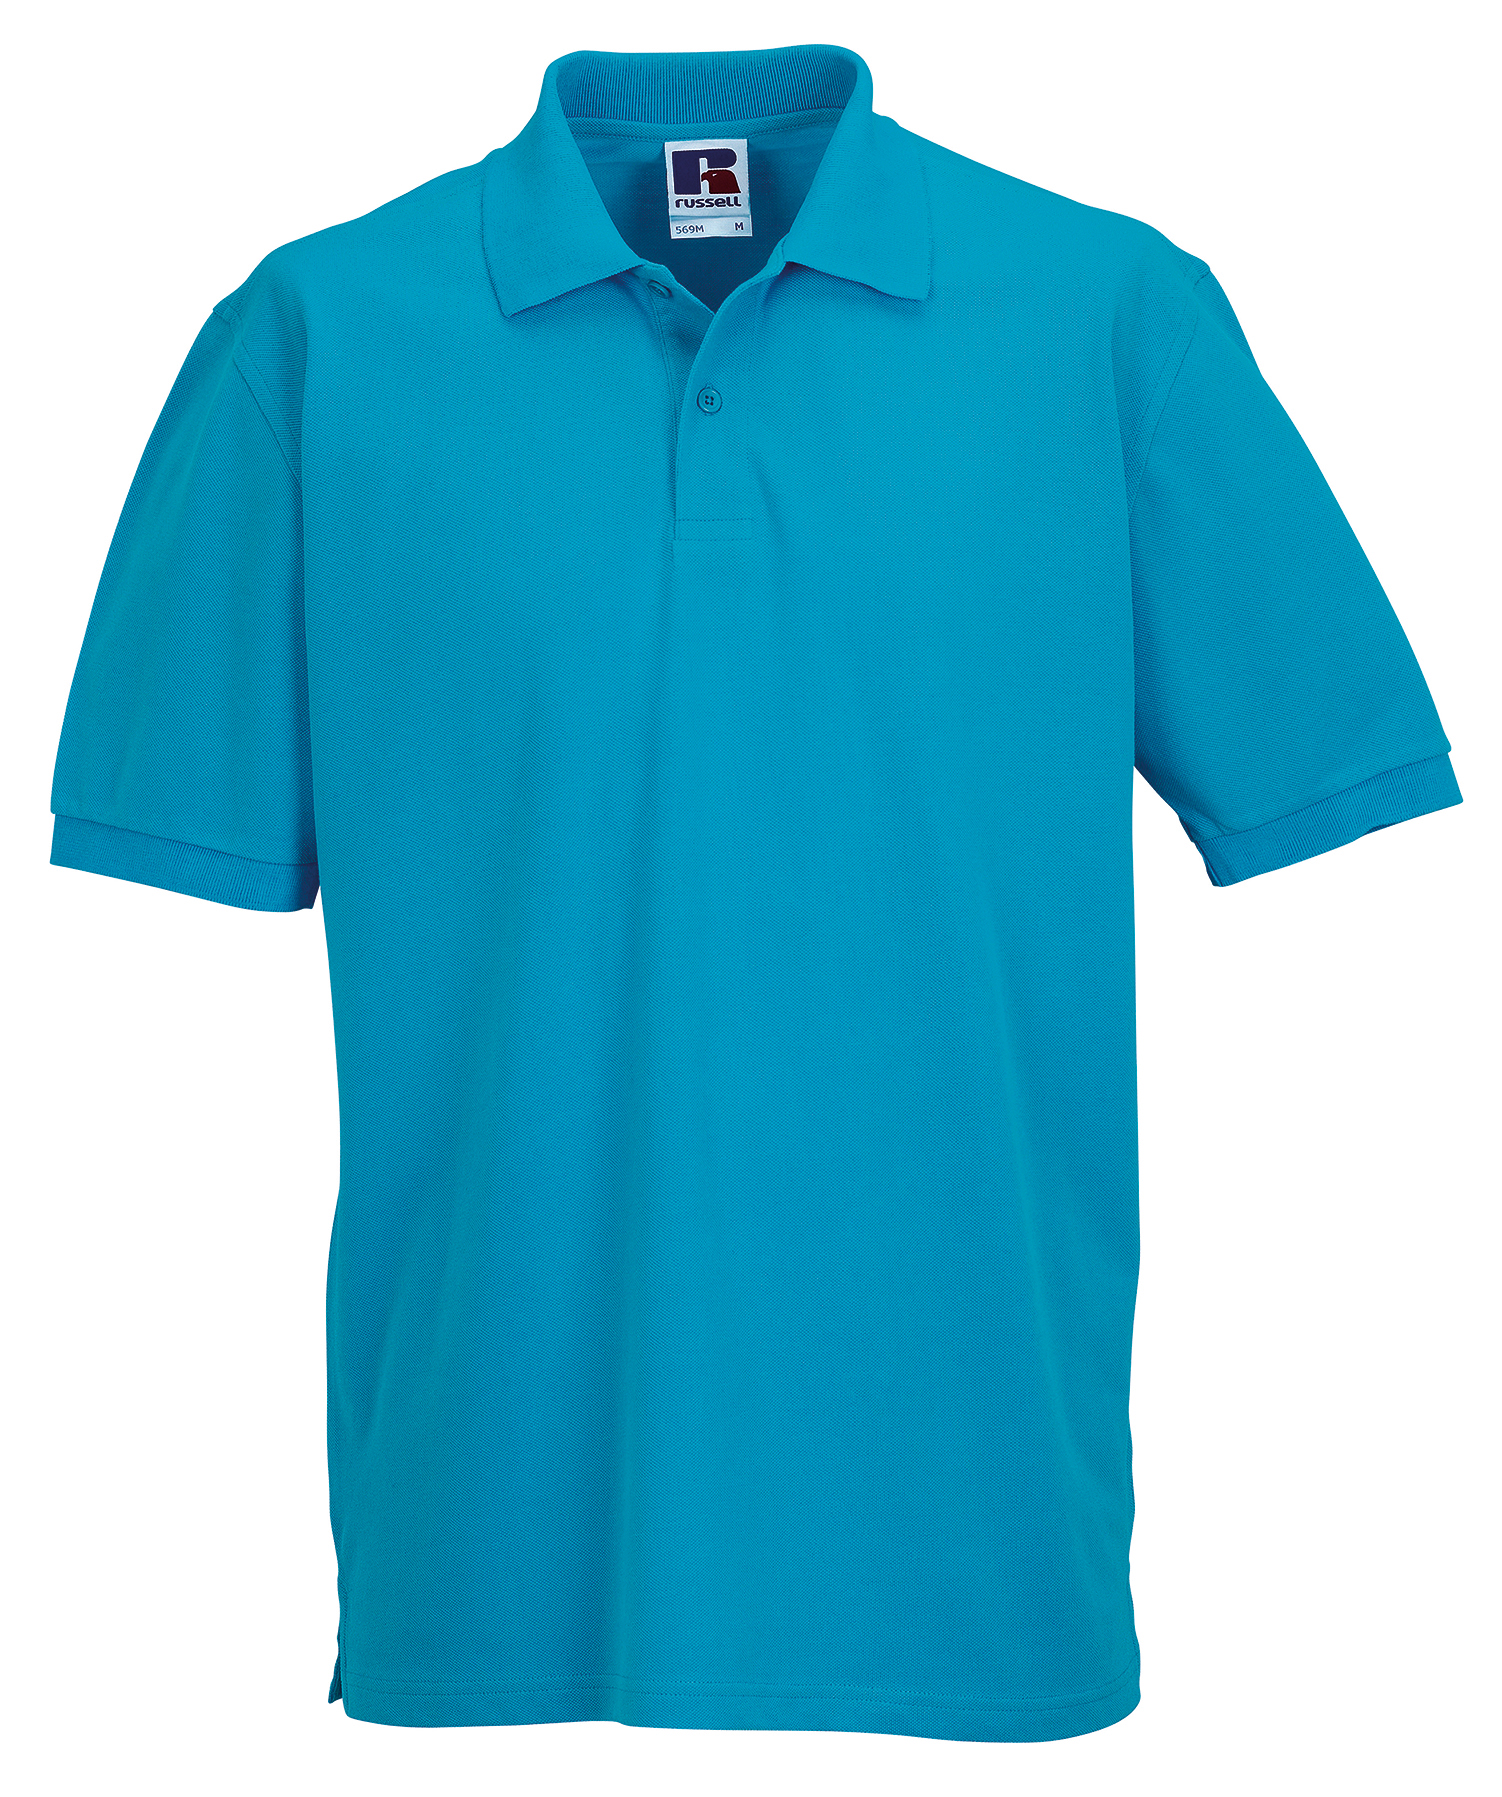 Russell classic cotton polo shirt 569m for Cotton on polo shirt